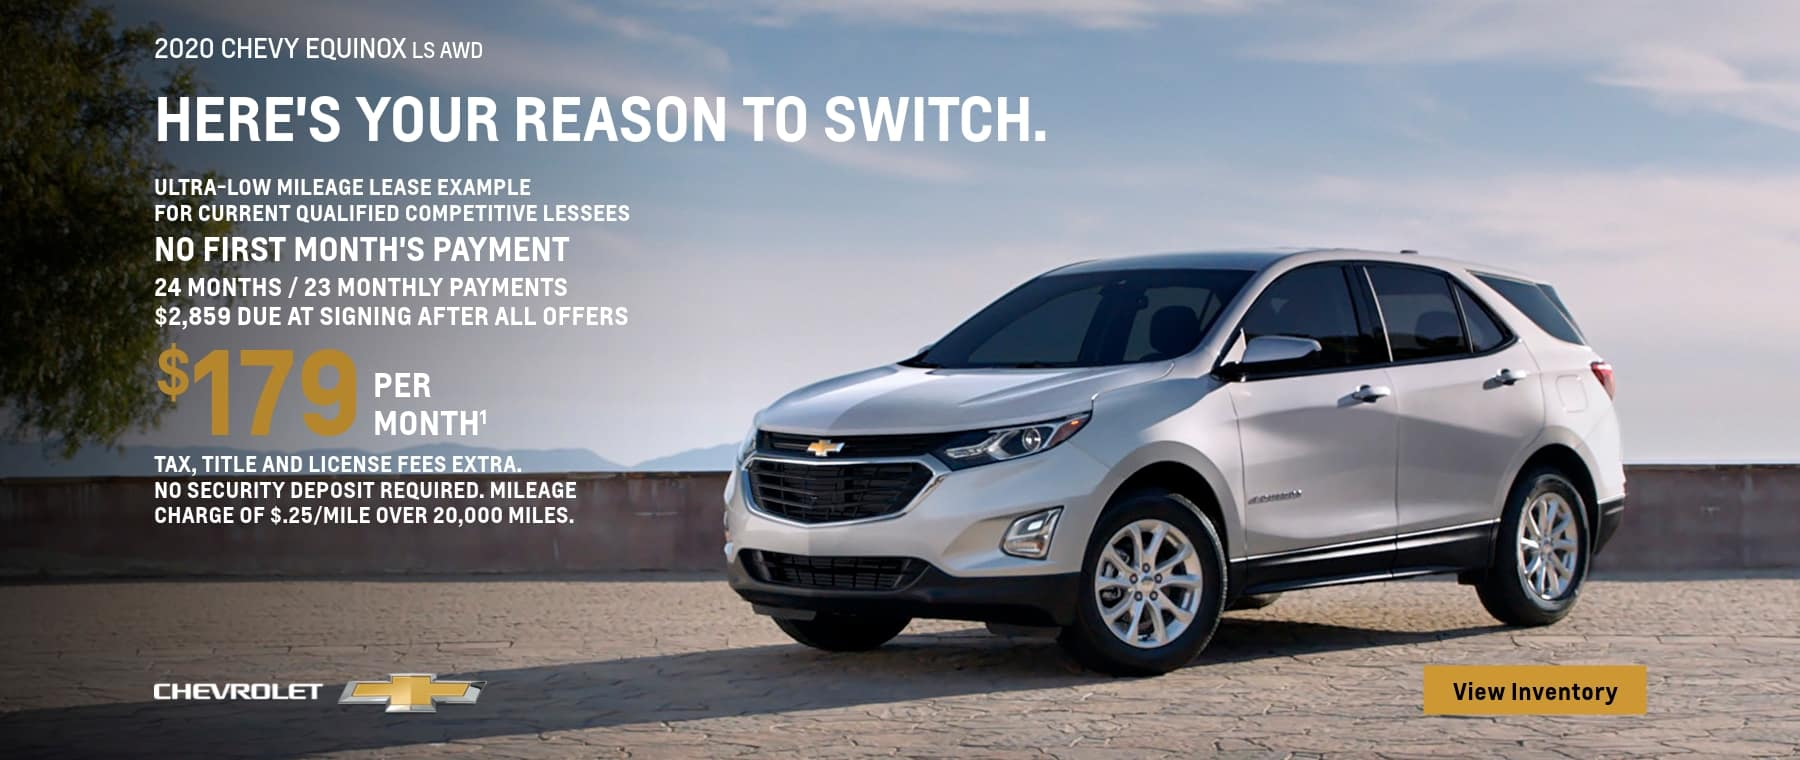 2020 Equinox LS AWD Ultra-Low Mileage Lease Examples for Qualified Lessees $179 per month.